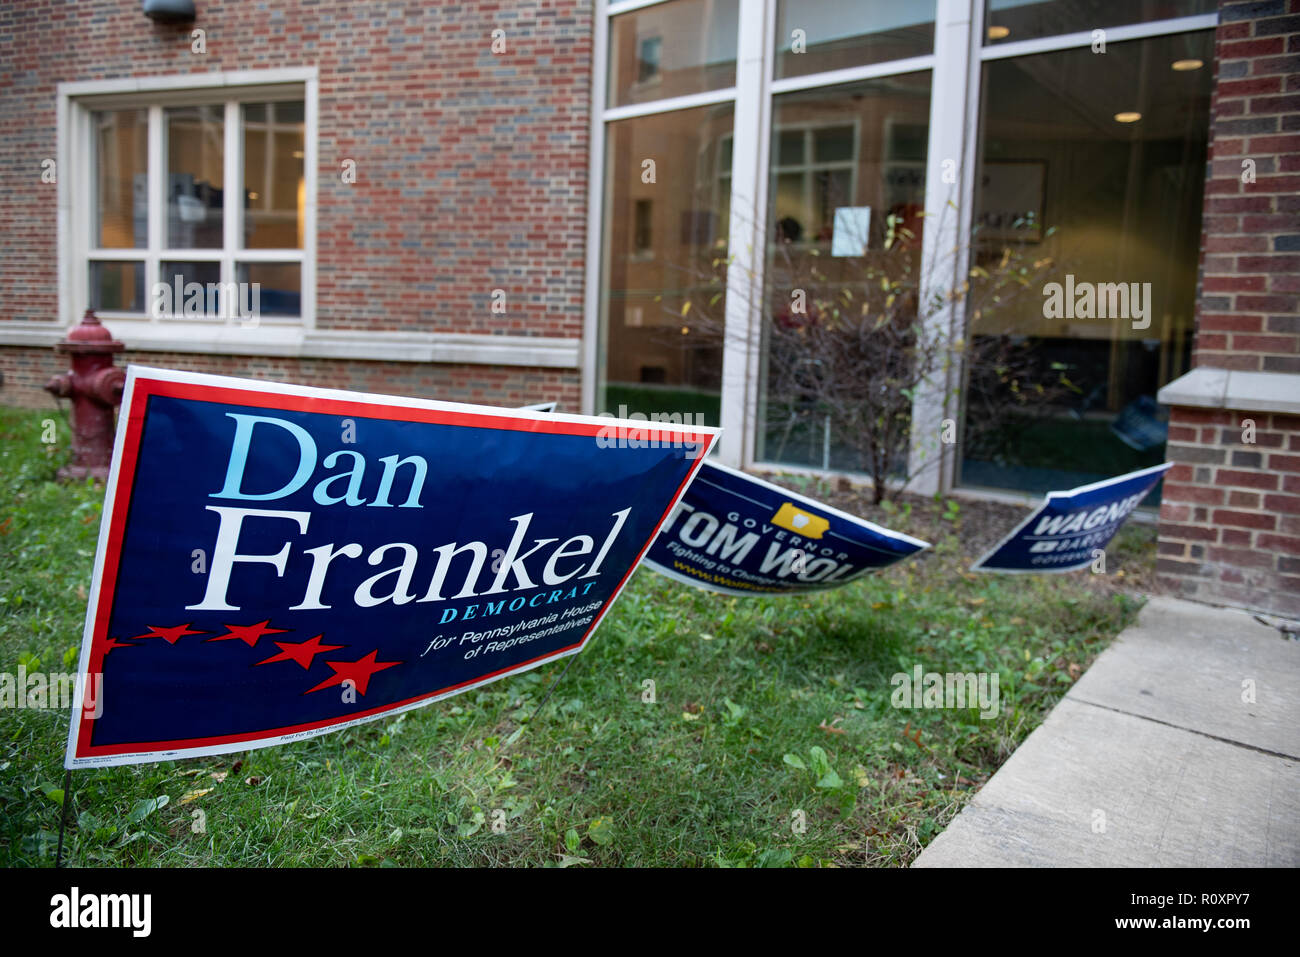 Yard signs are seen hanging during the midterm elections in Pittsburgh, PA in the aftermath of the Tree of Life shootings. - Stock Image